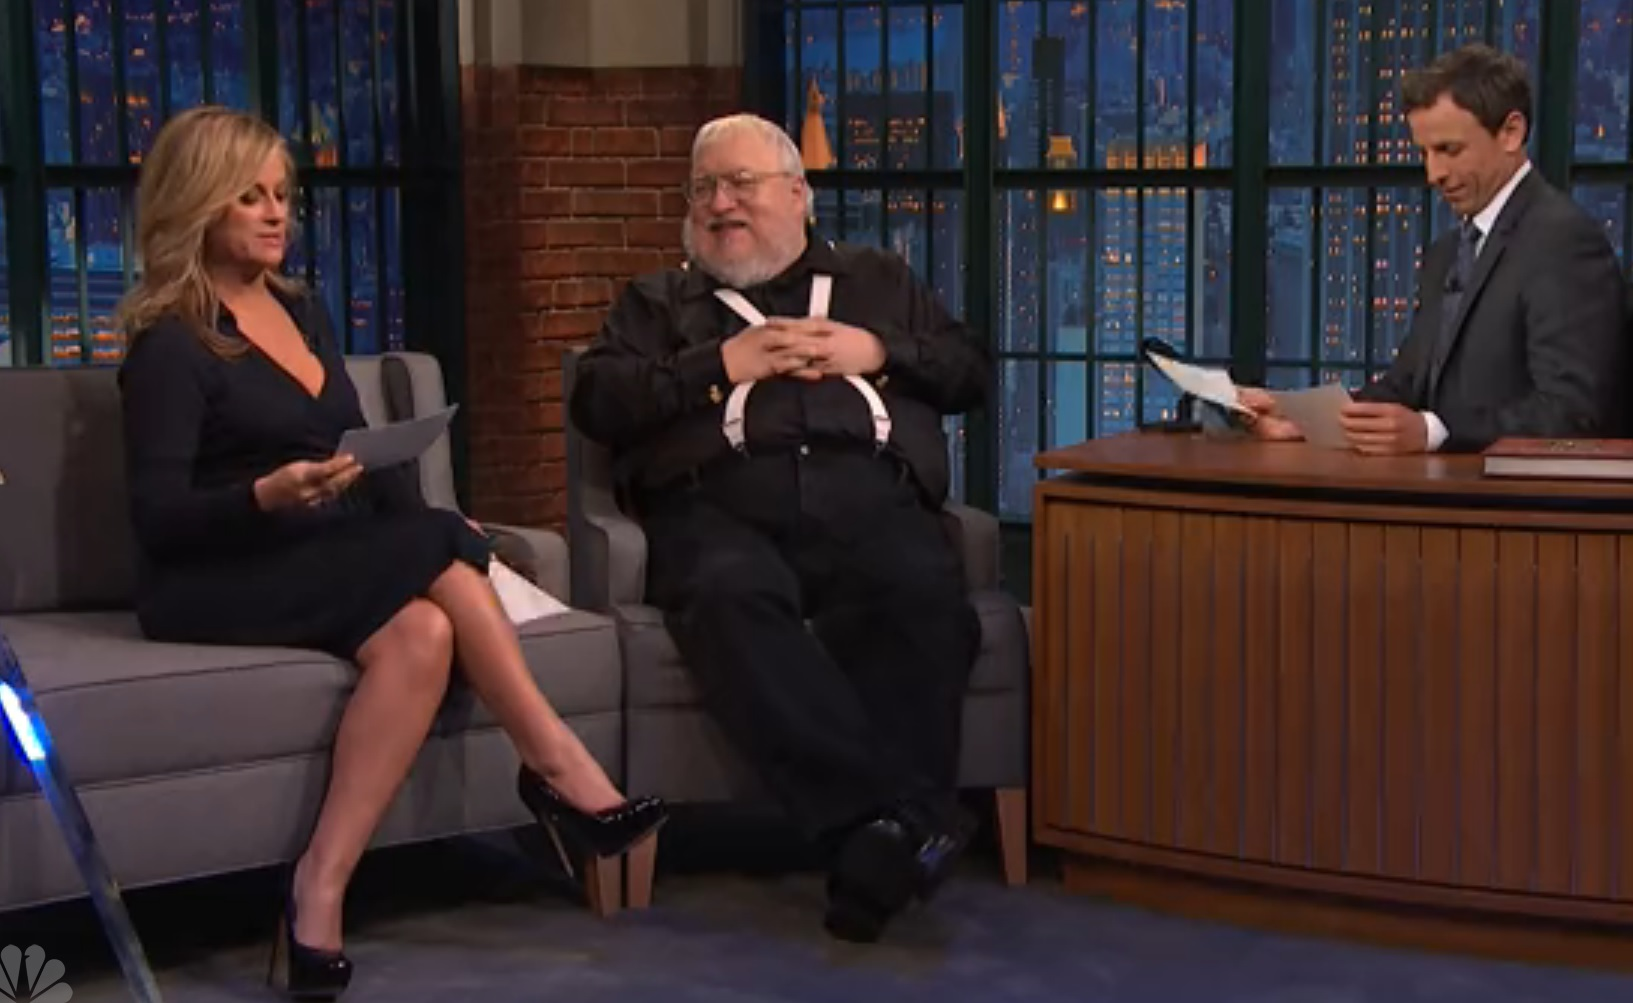 Watch Amy Poehler quiz George R.R. Martin on 'Game of Thrones' characters